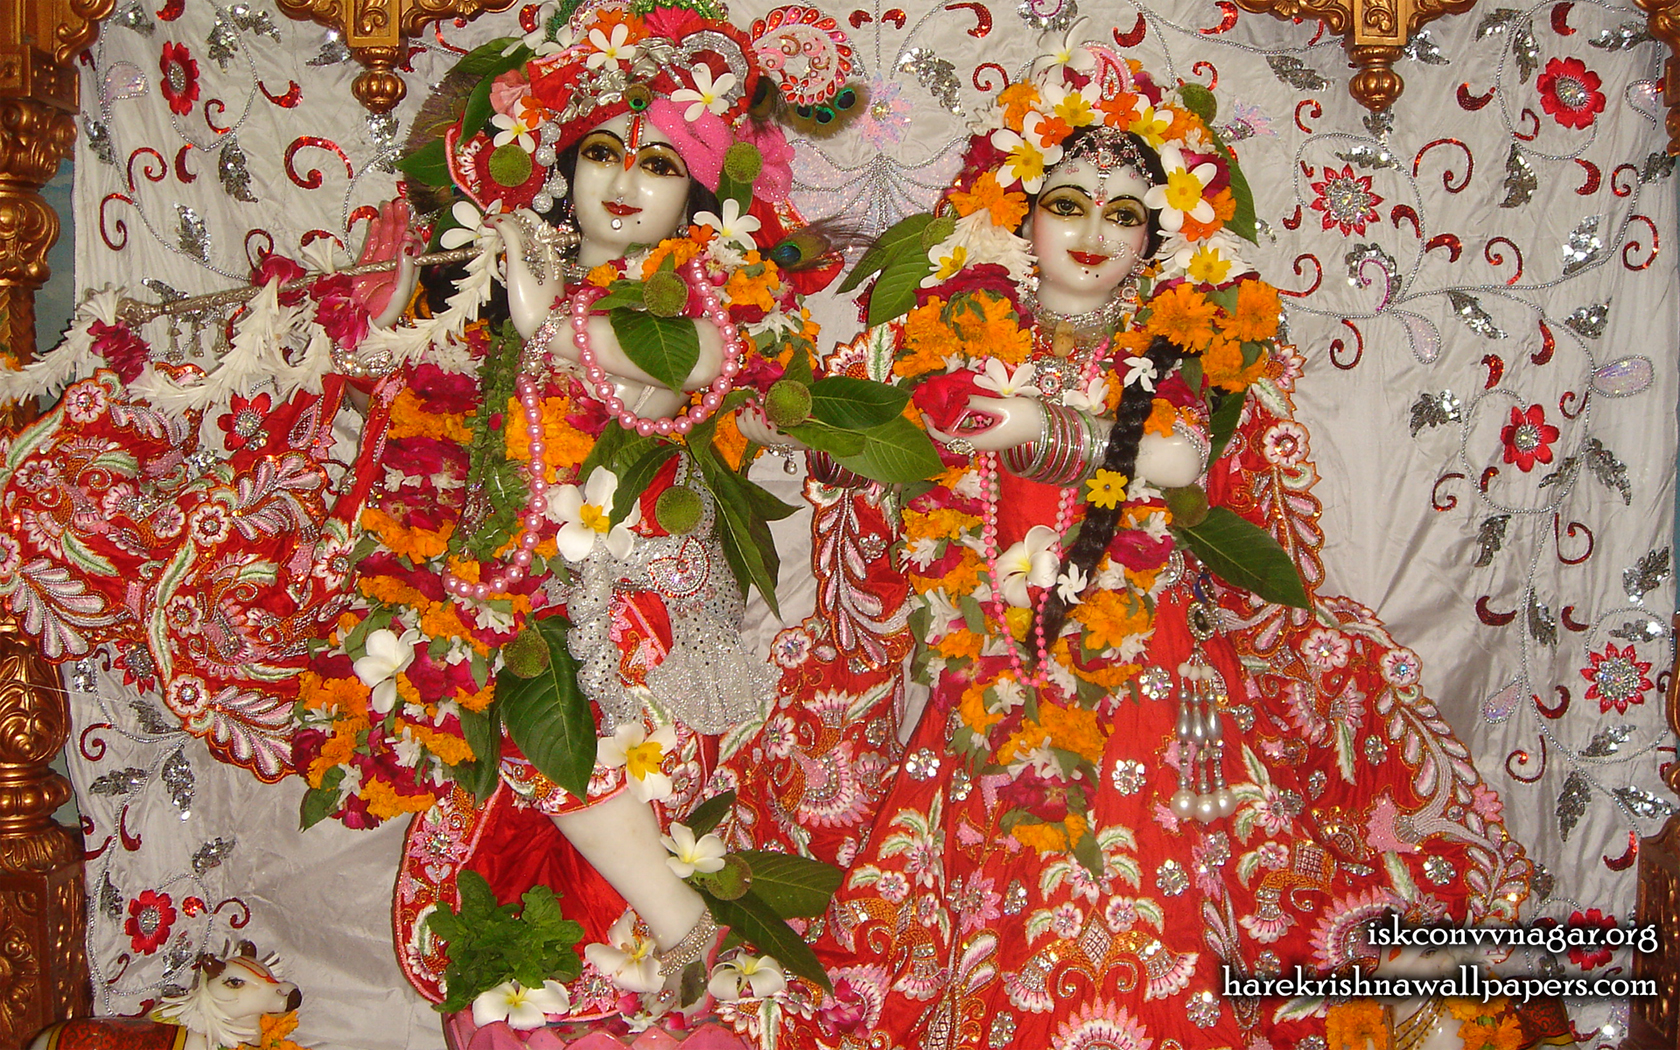 Sri Sri Radha Giridhari Wallpaper (031) Size 1680x1050 Download